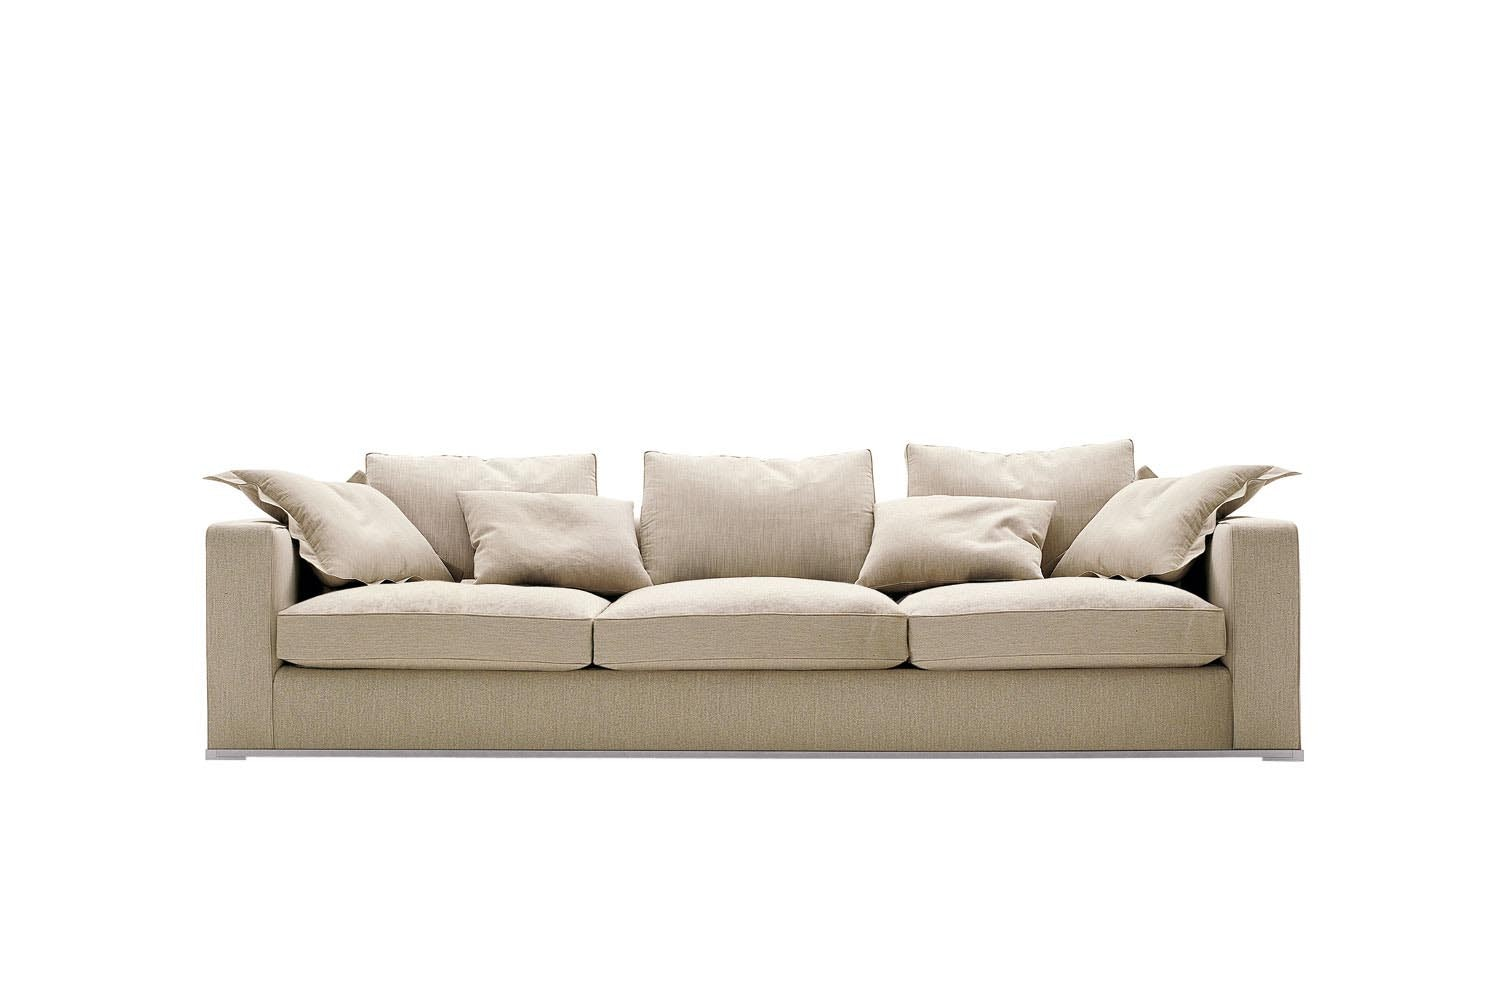 Omnia Sofa by Antonio Citterio for Maxalto